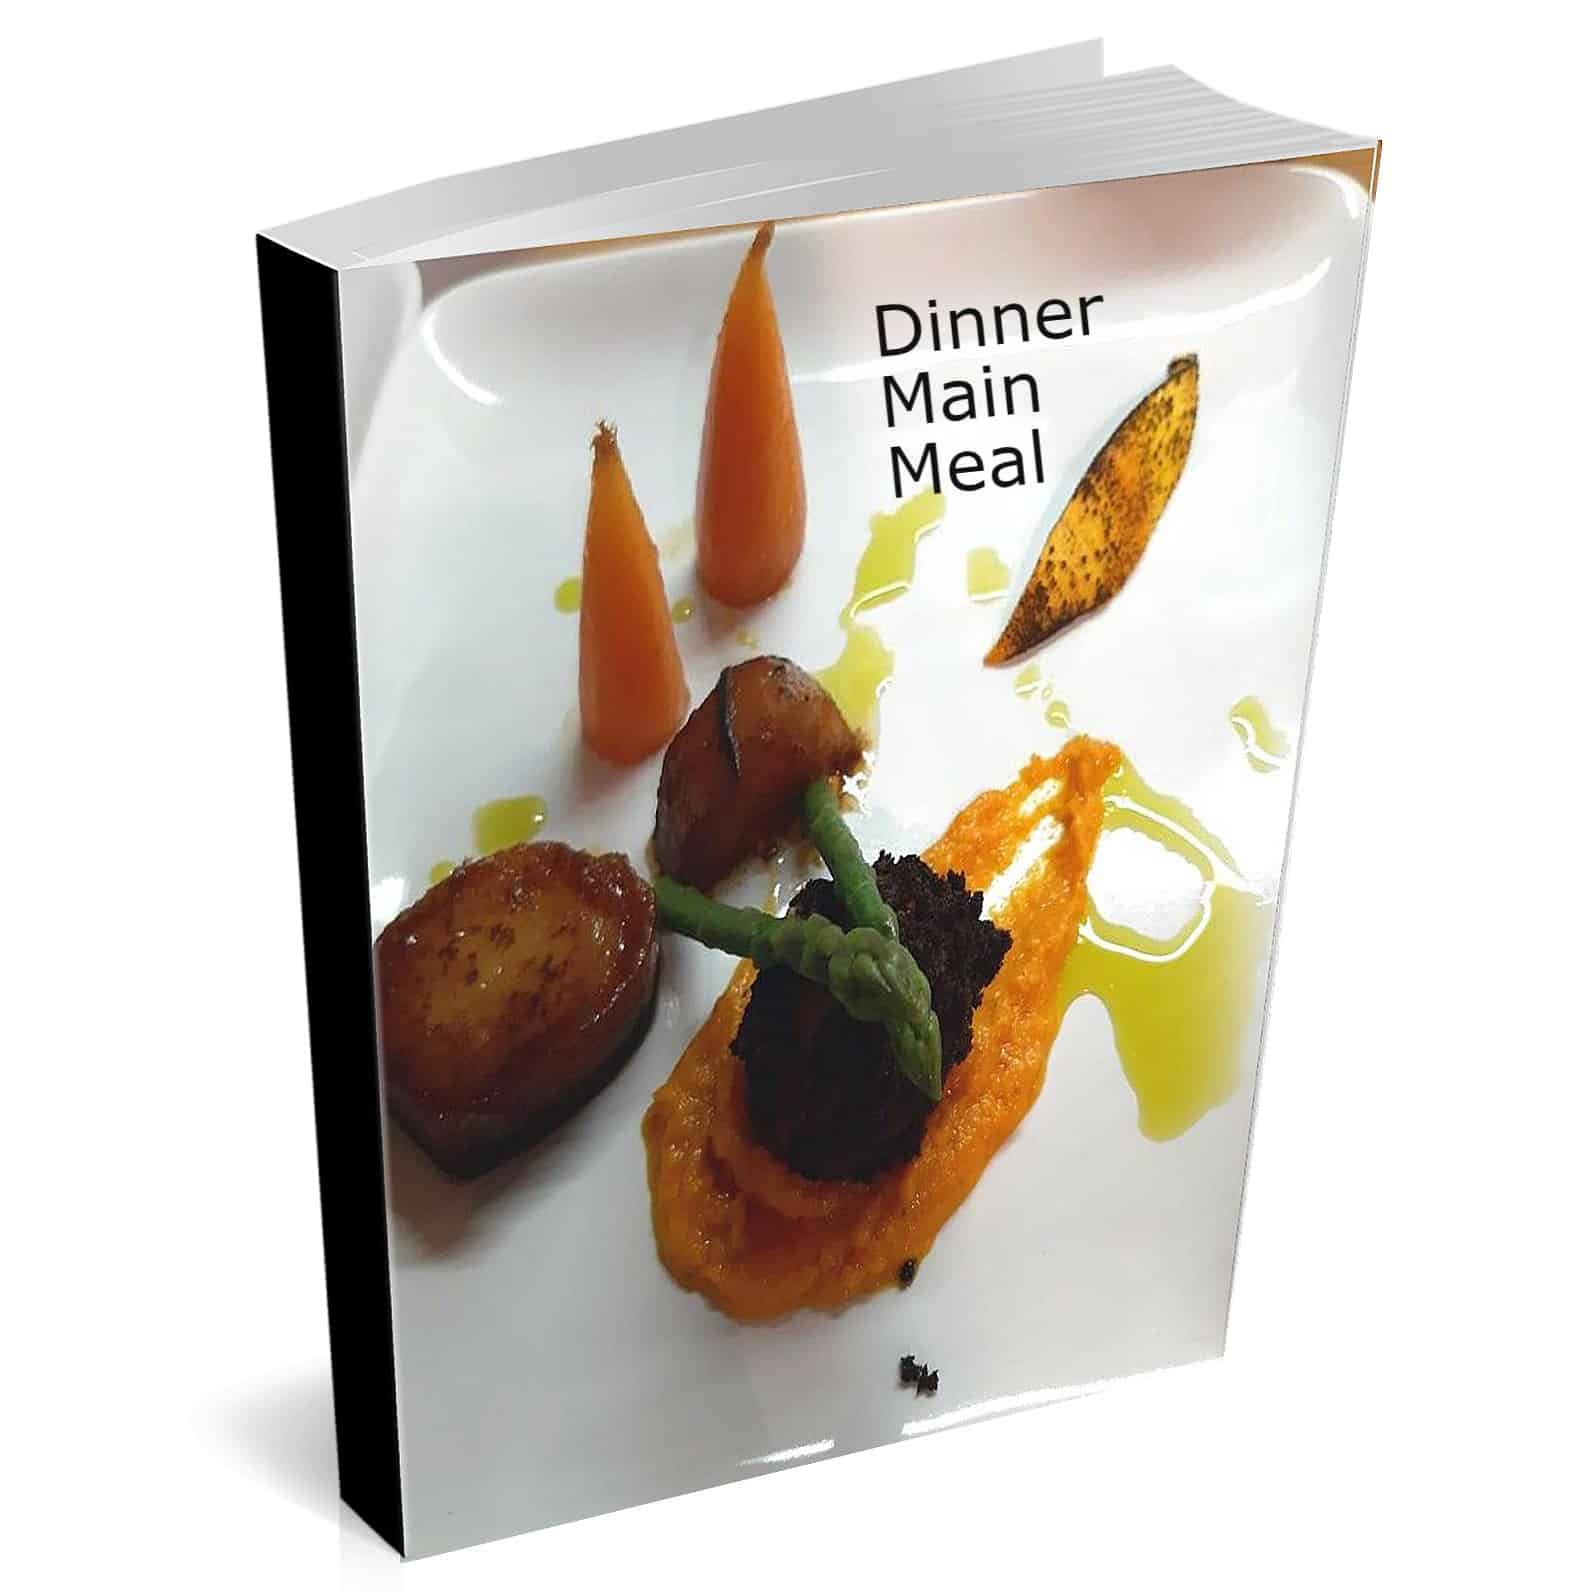 Recipe eBook cover with potatoes, carrots, asparagus and confit duck